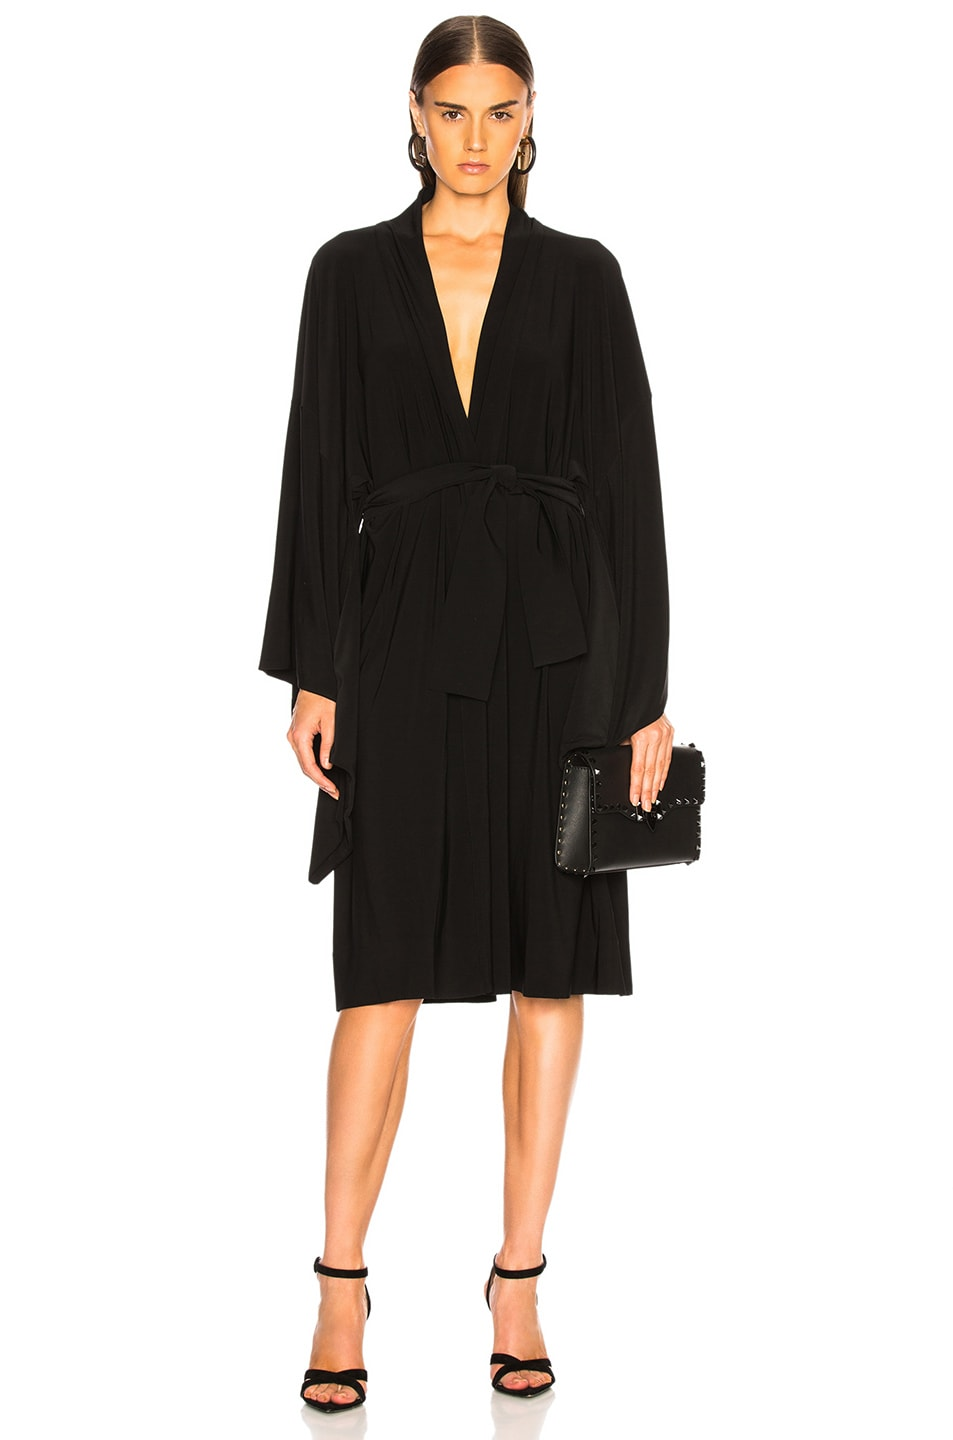 Image 1 of Norma Kamali for FWRD Midcalf Wrap Dress in Black